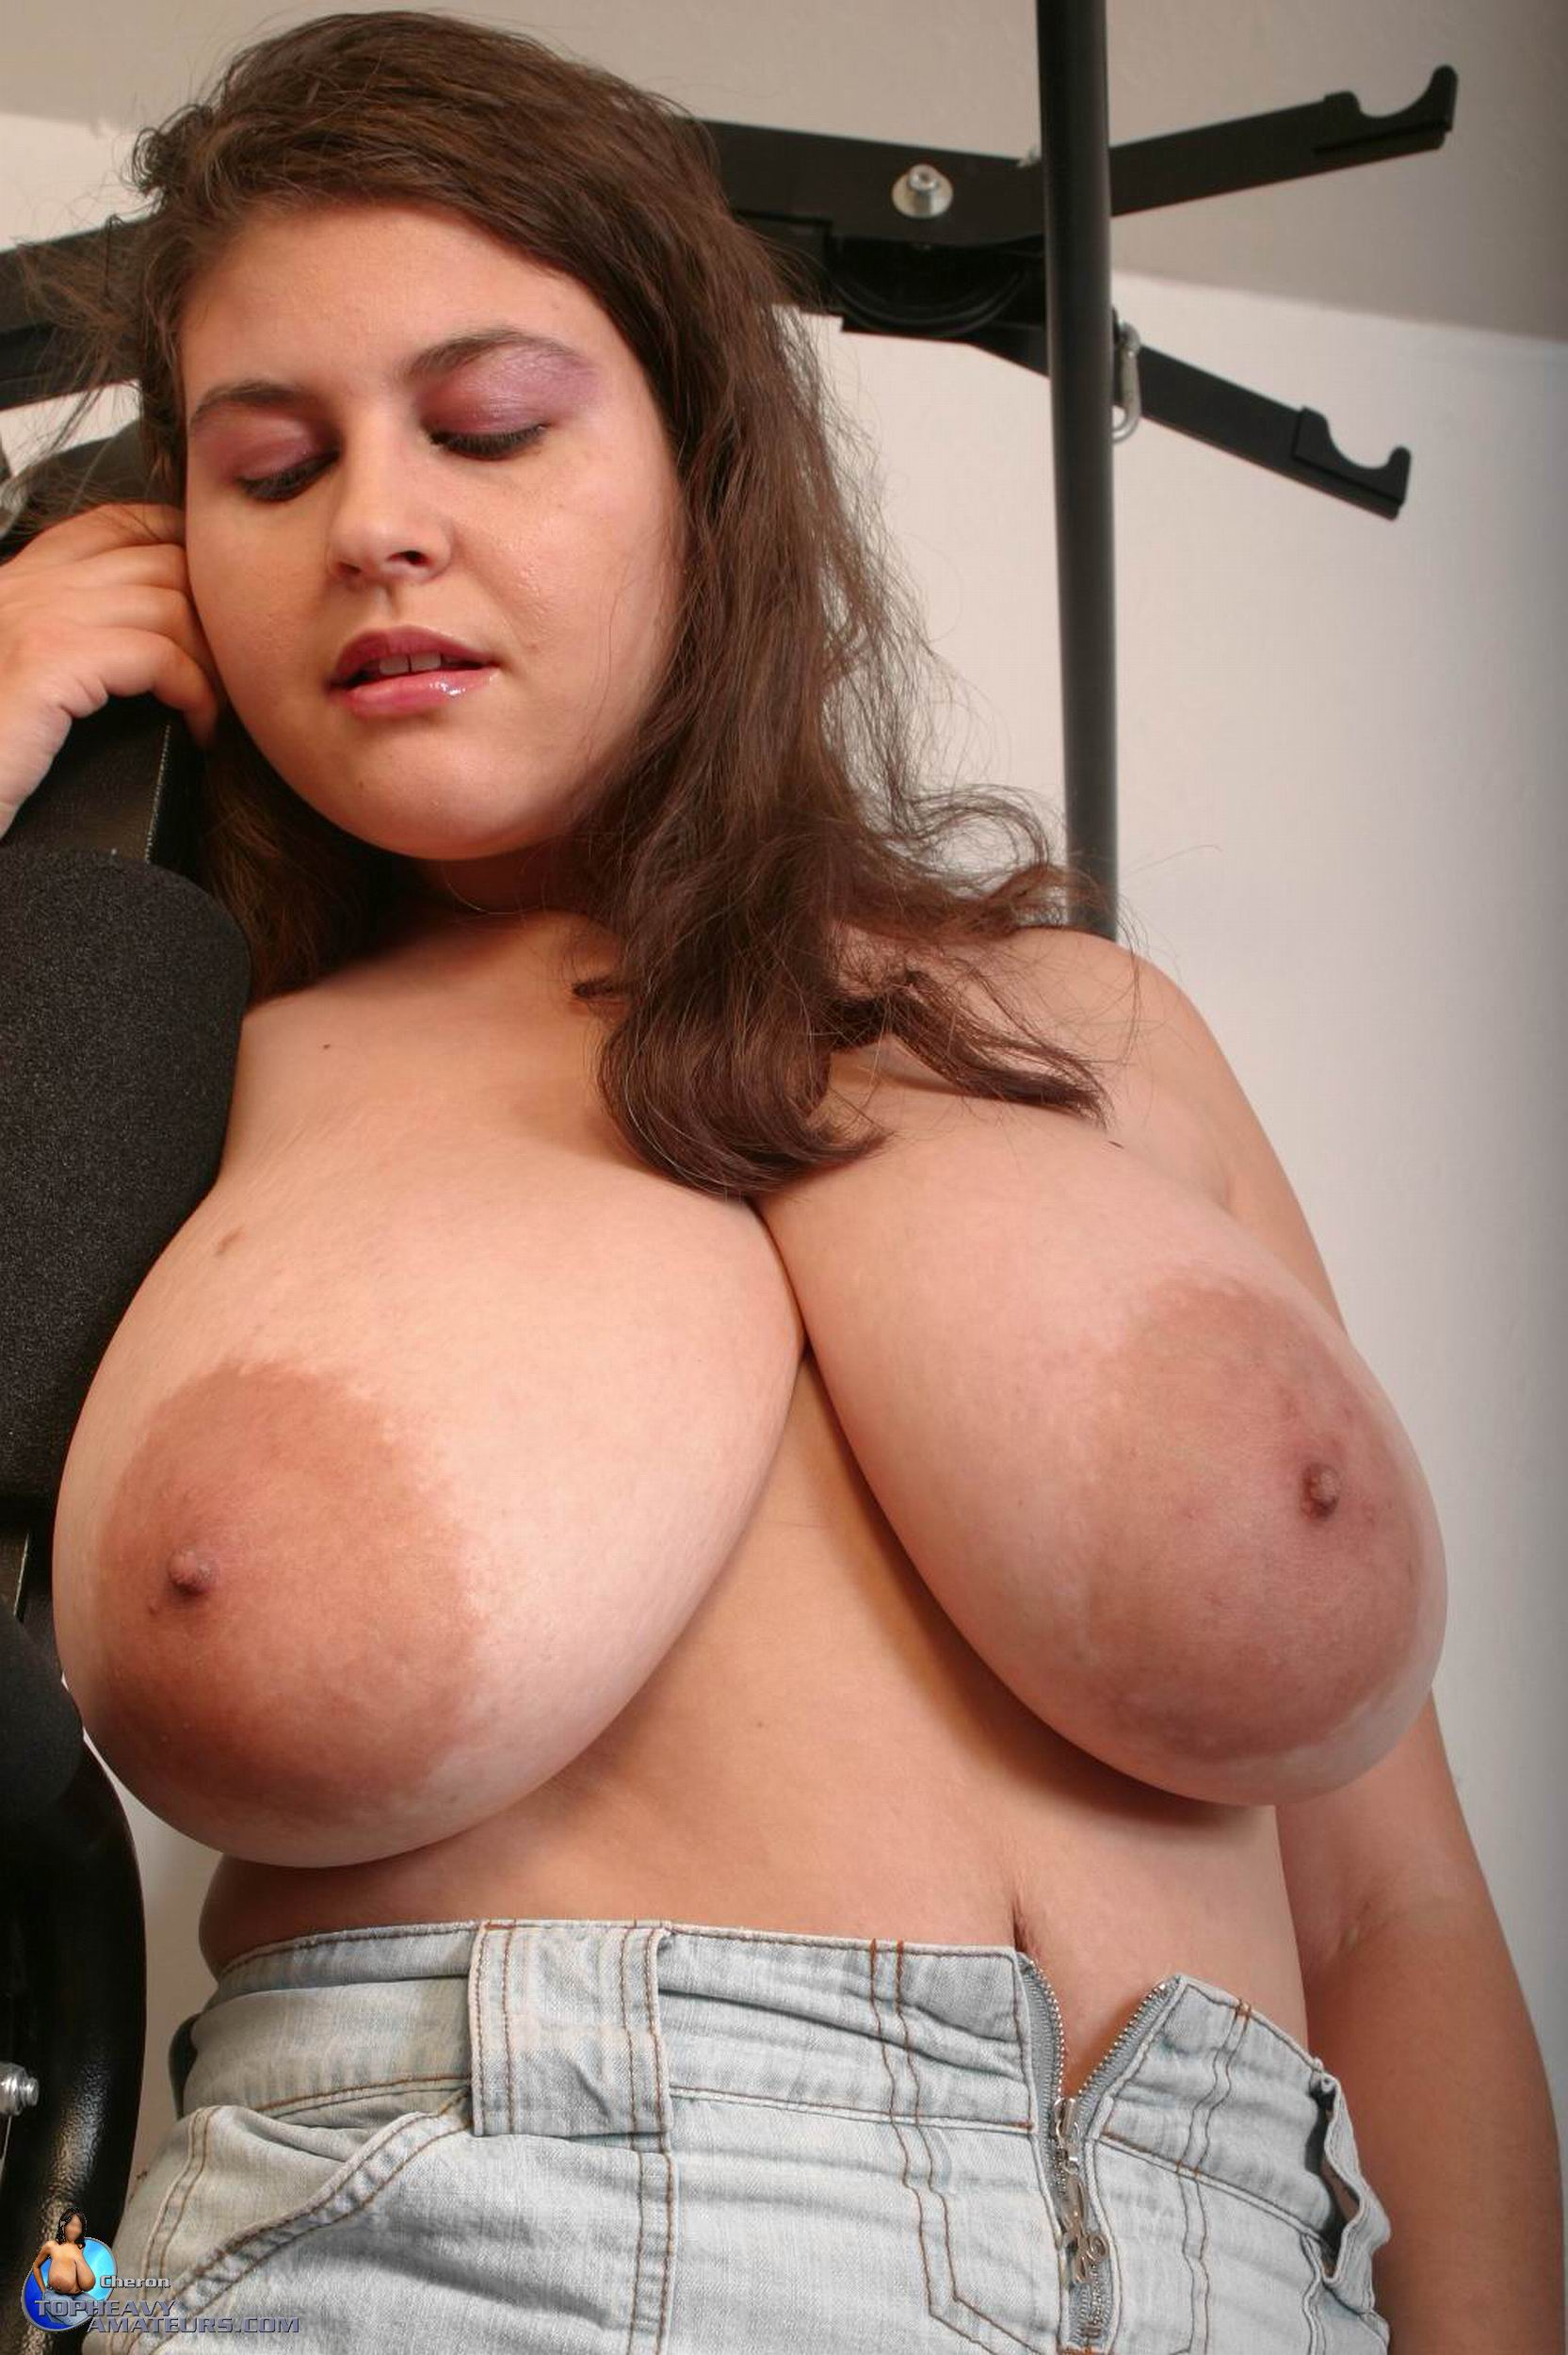 Big women on top